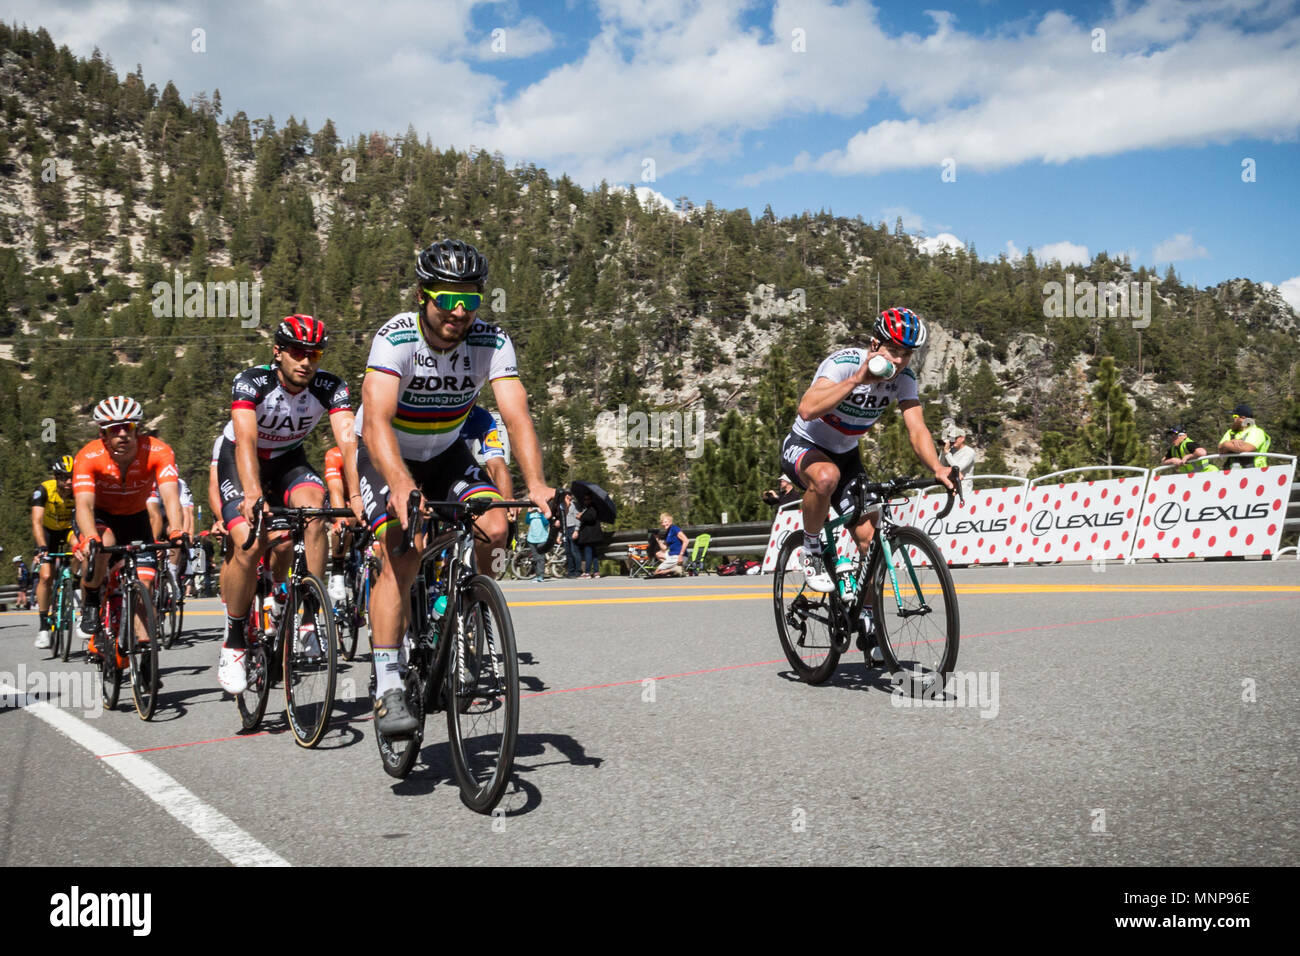 Nevada, USA. 18th May, 2018. PETER SAGAN (SVK), team BORA - hansgrohe (GER), leads a small group of riders at Daggett Summitt, 7334 ft, along Kingsbury Grade Rd., Nevada, near South Lake Tahoe during the Men's Stage 6 of the Amgen Tour of California, on Friday, May 18, 2018. Credit: Tracy Barbutes/ZUMA Wire/Alamy Live News - Stock Image